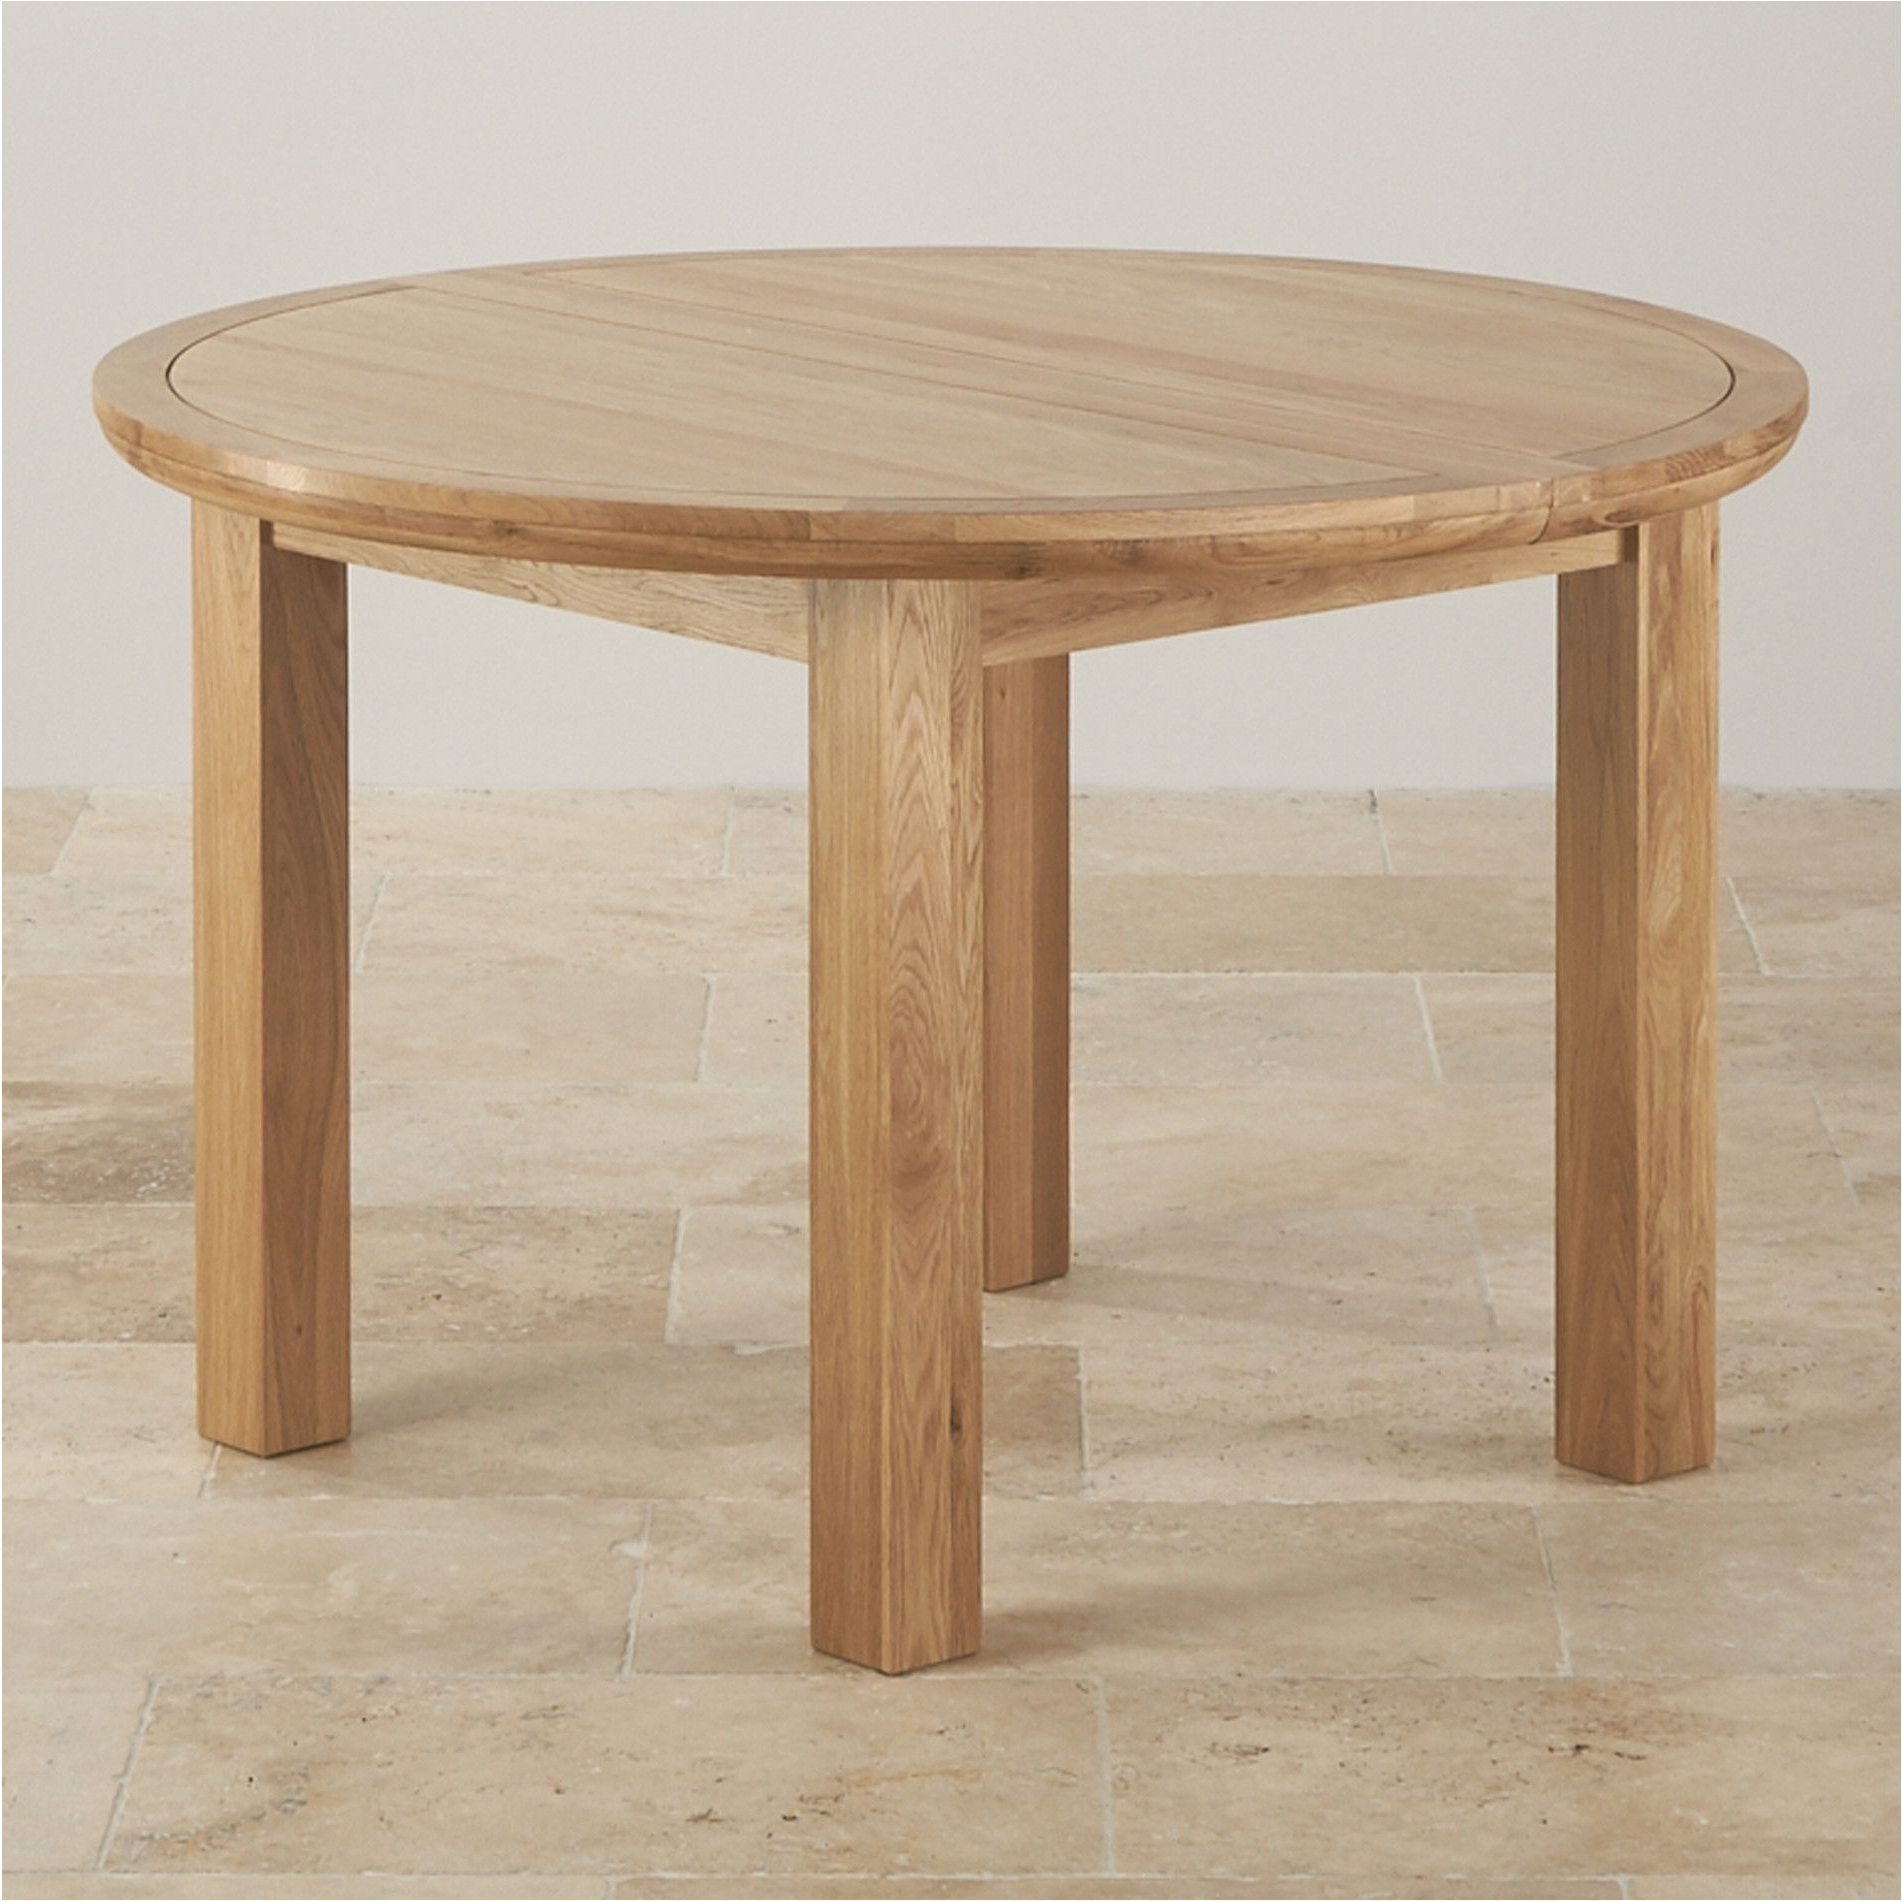 Newest Marvelous Stunning Round Oak Dining Tables Pertaining To House With Oak Dining Tables (View 14 of 25)